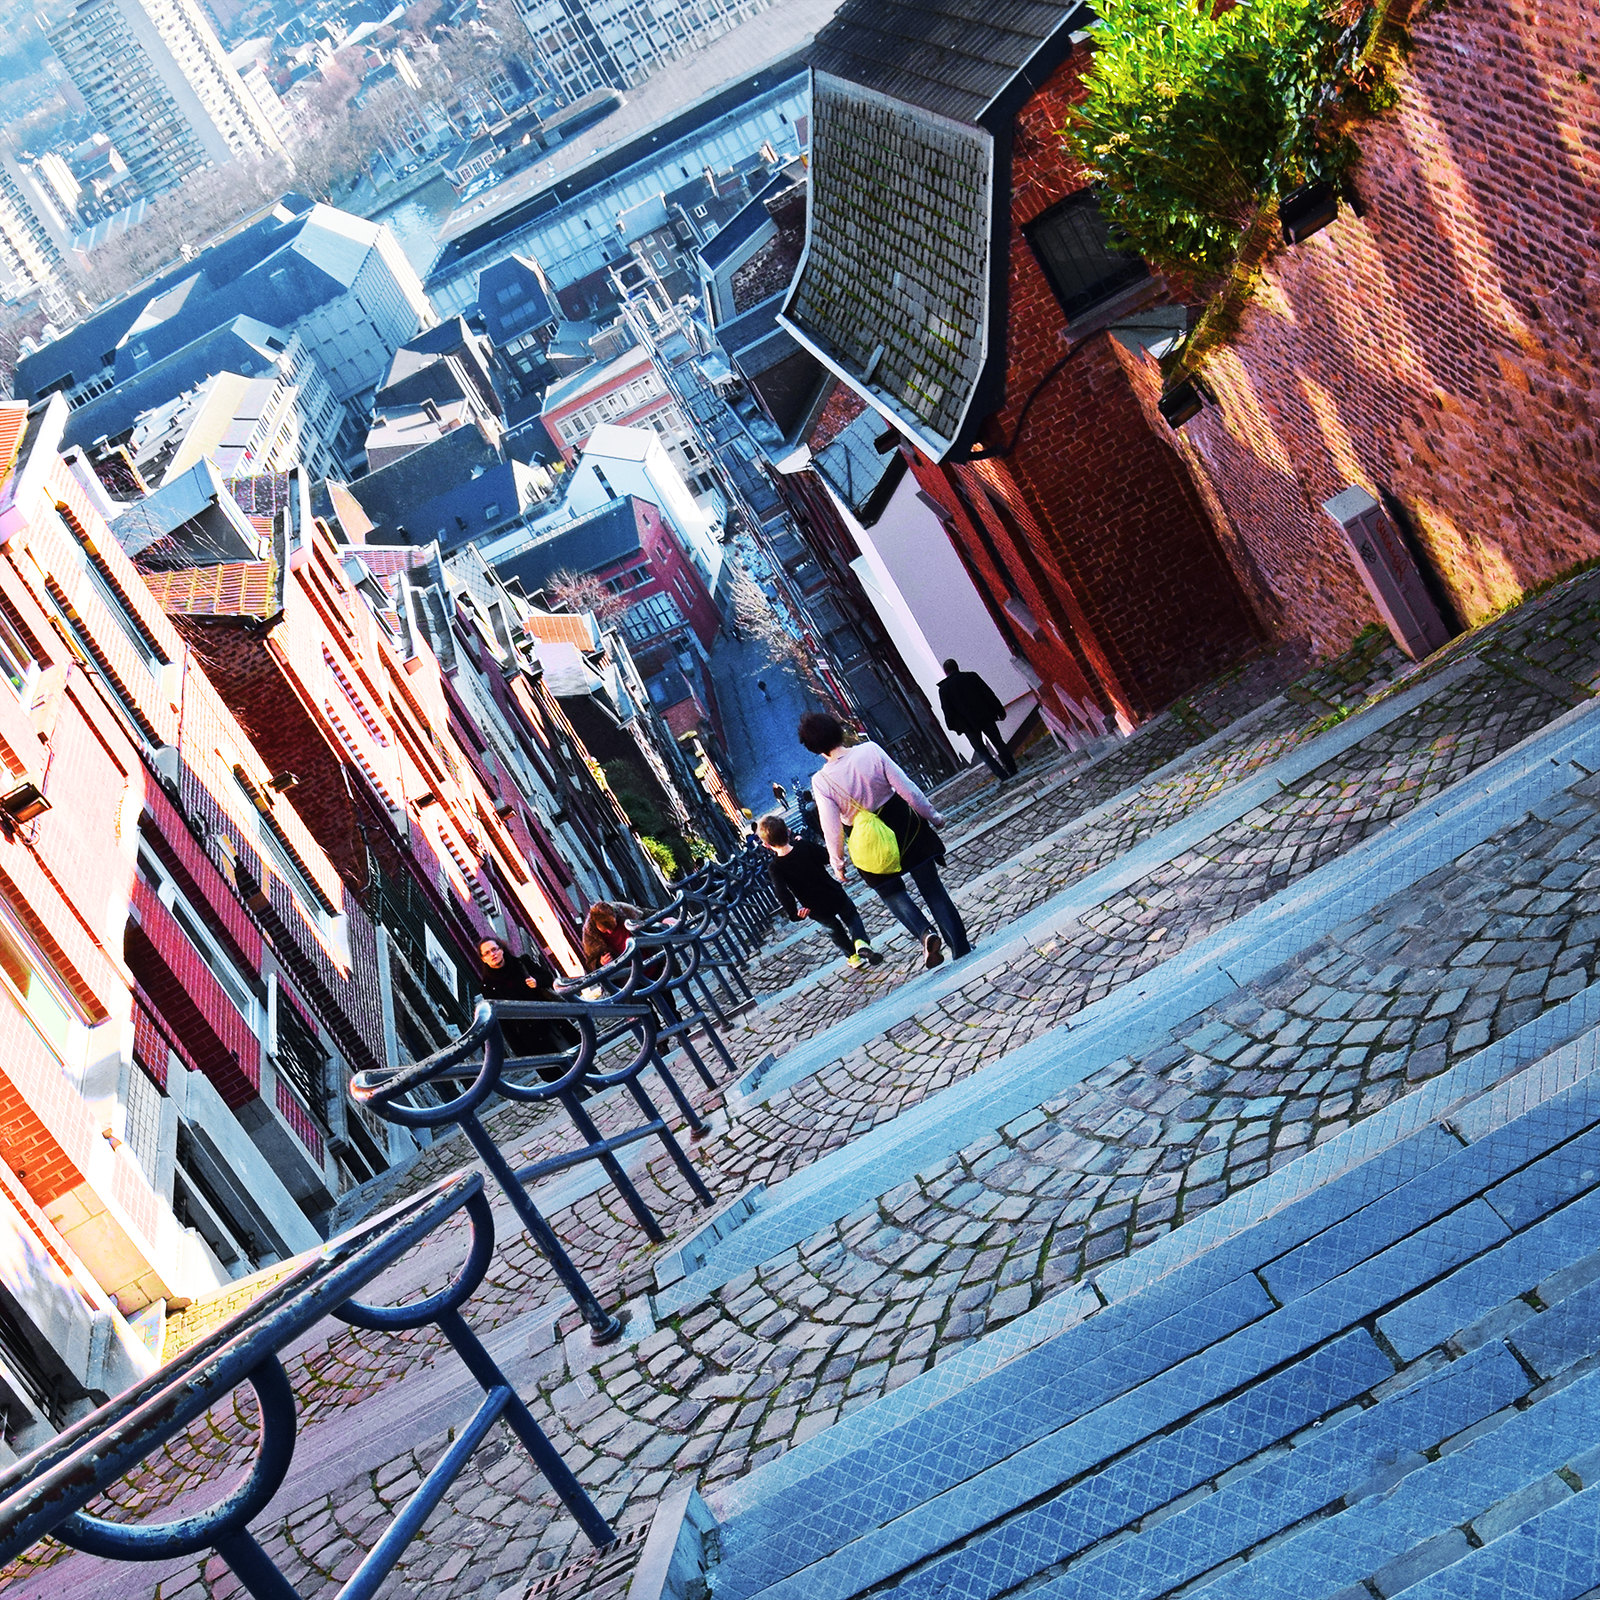 Stairs in Liege